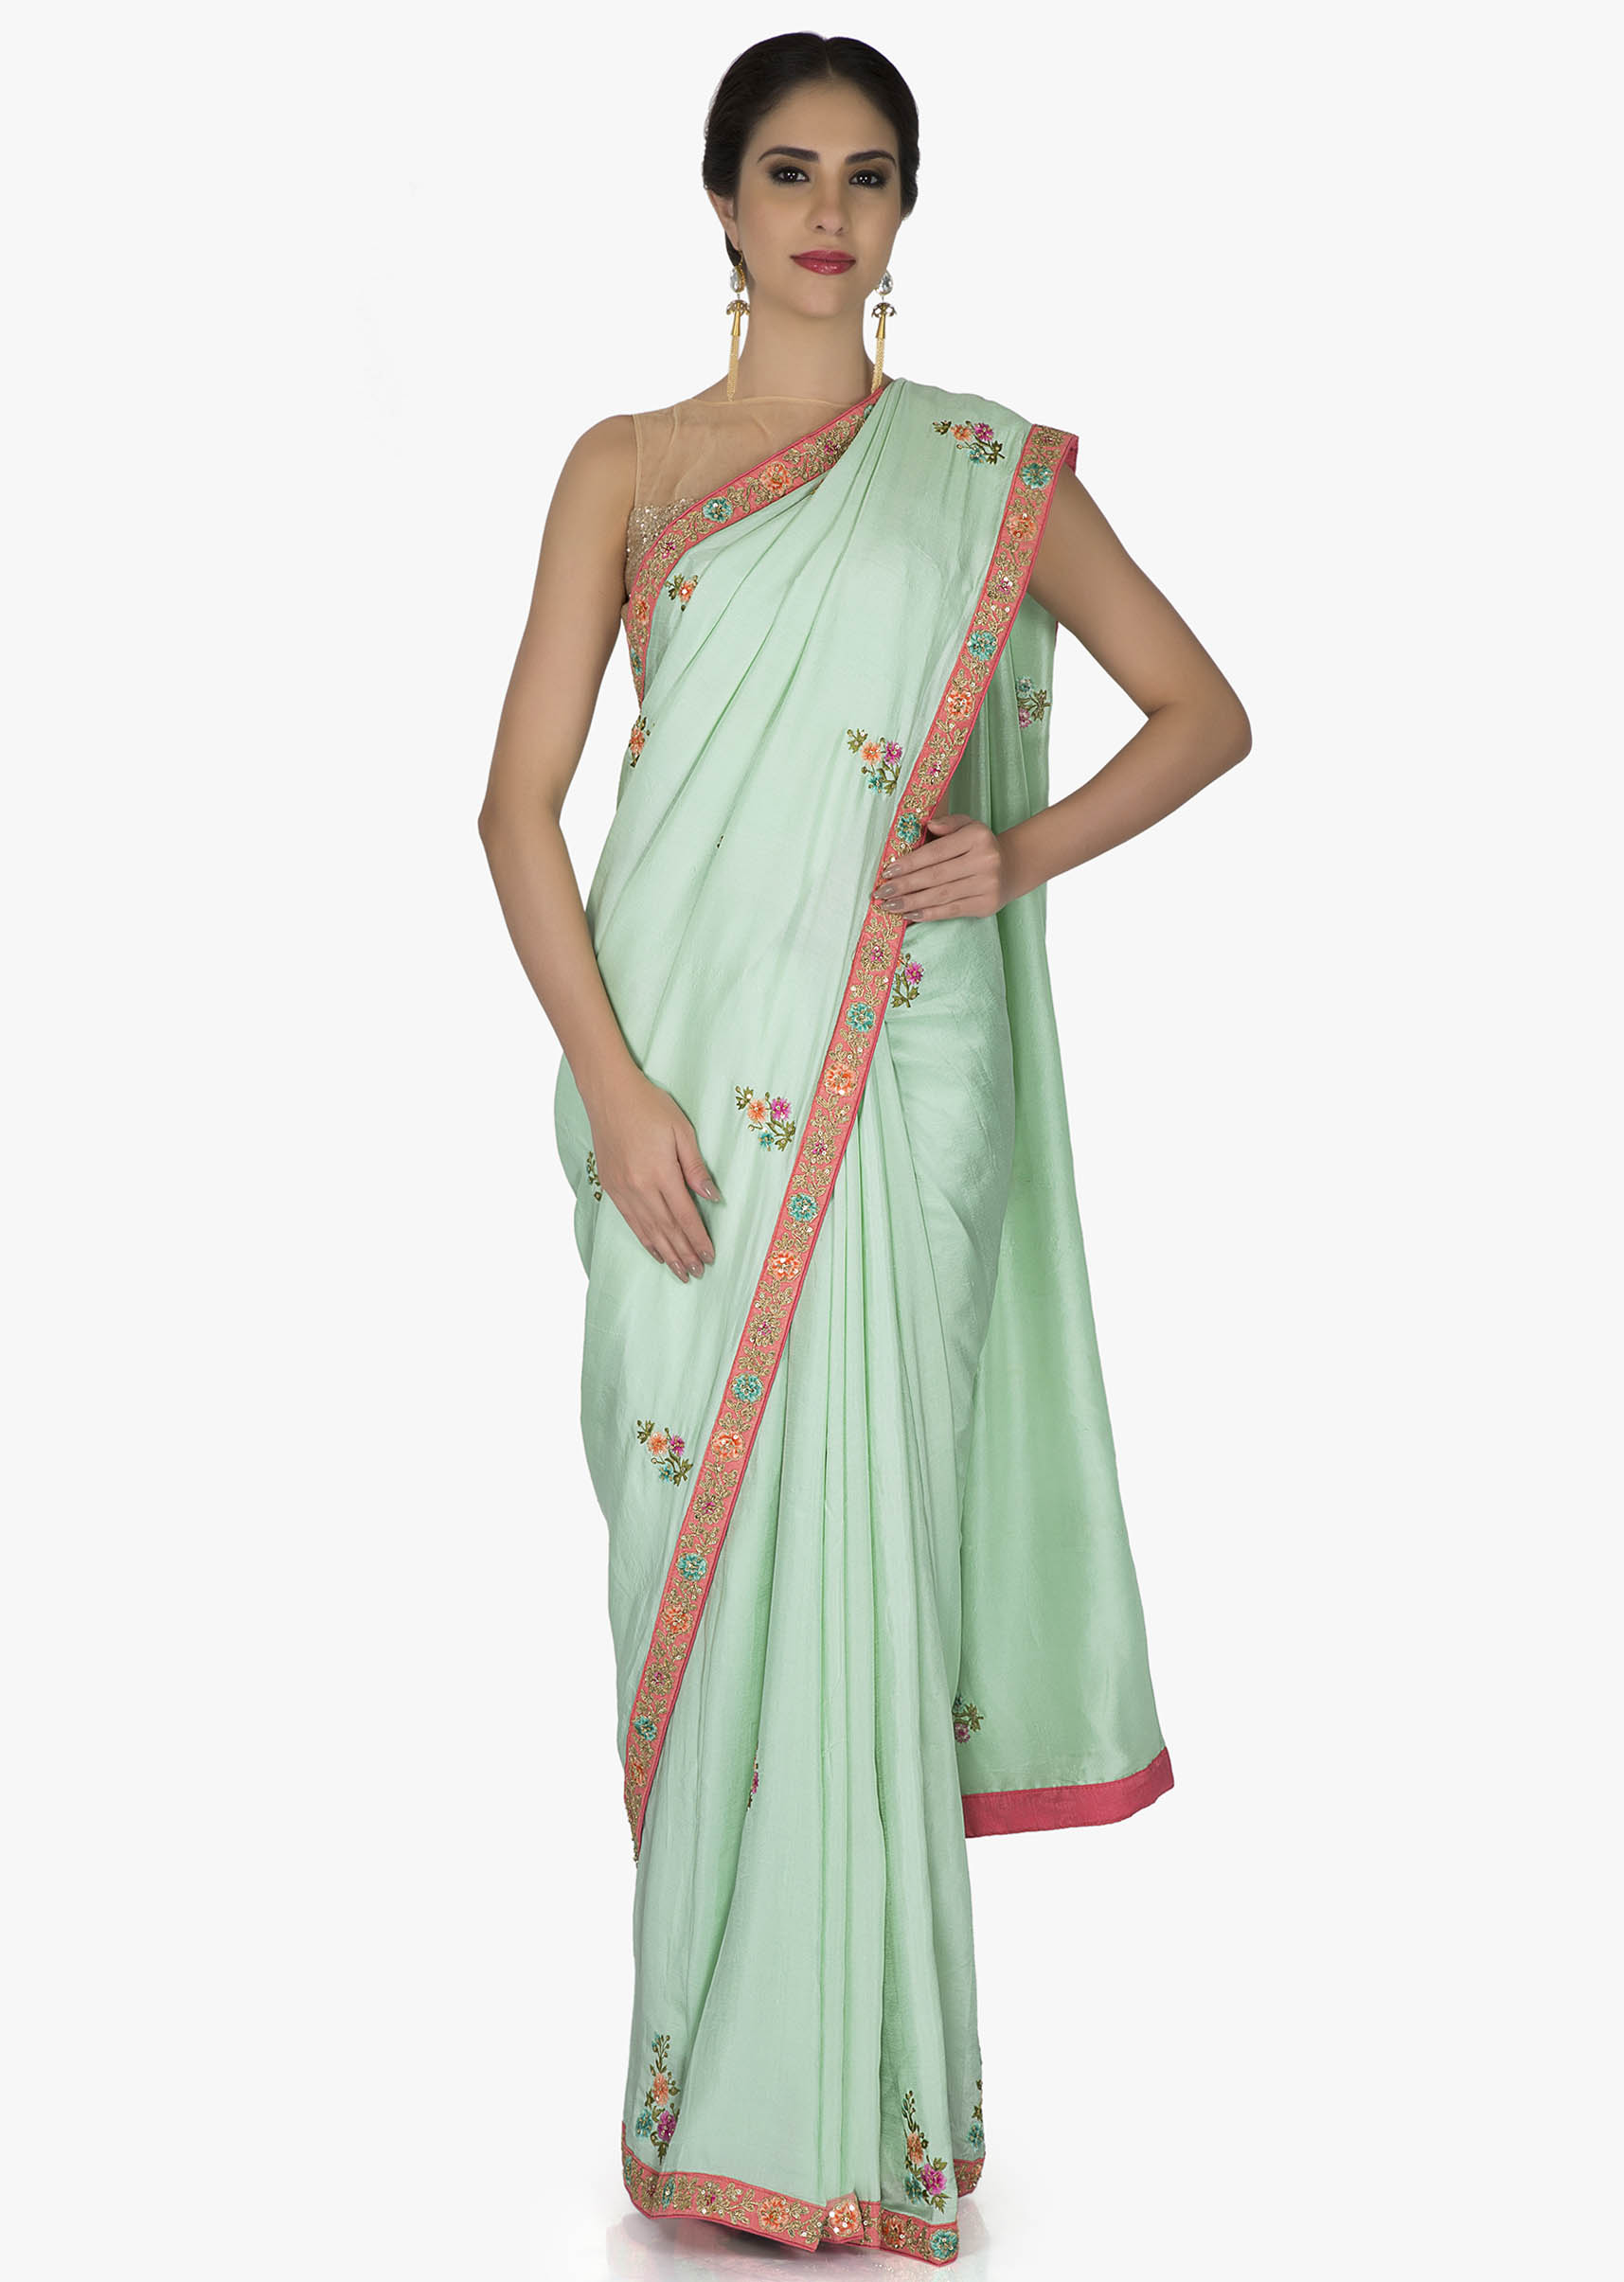 283cdf7ca2400 Sea Green Silk Saree and Pink Raw Silk Blouse with Resham Butti and Sequins only  on